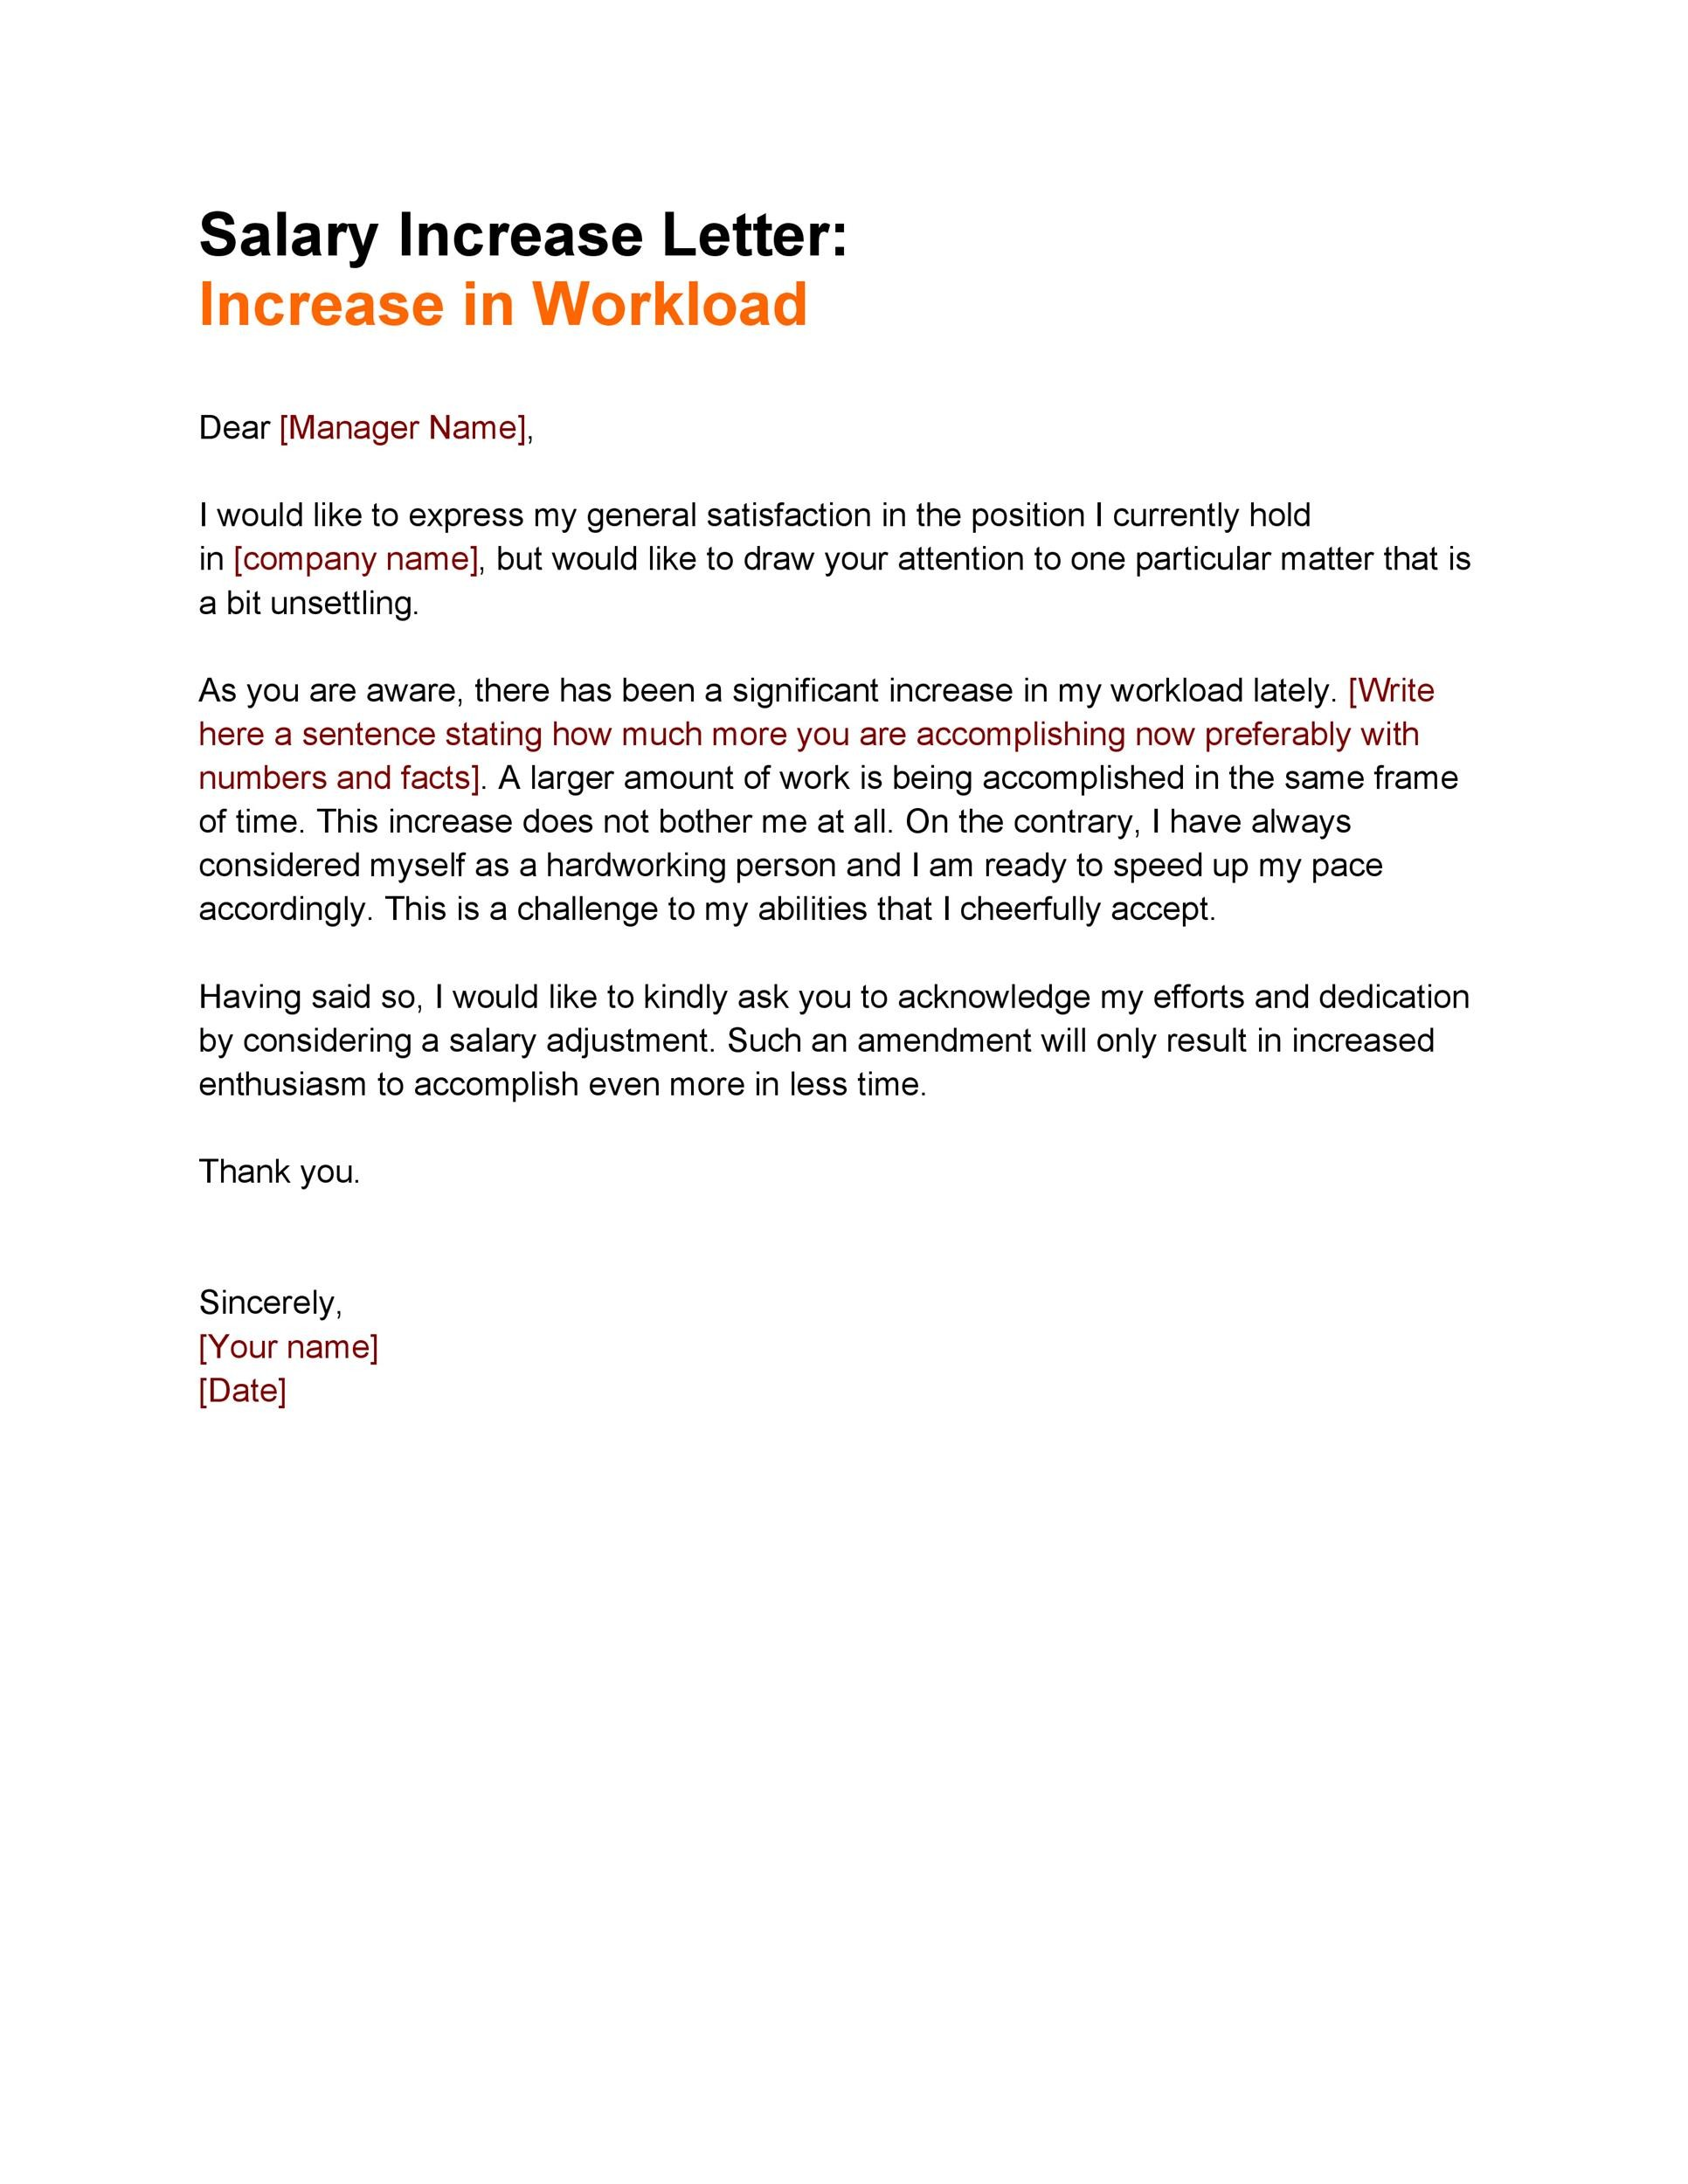 Free salary increase letter 28